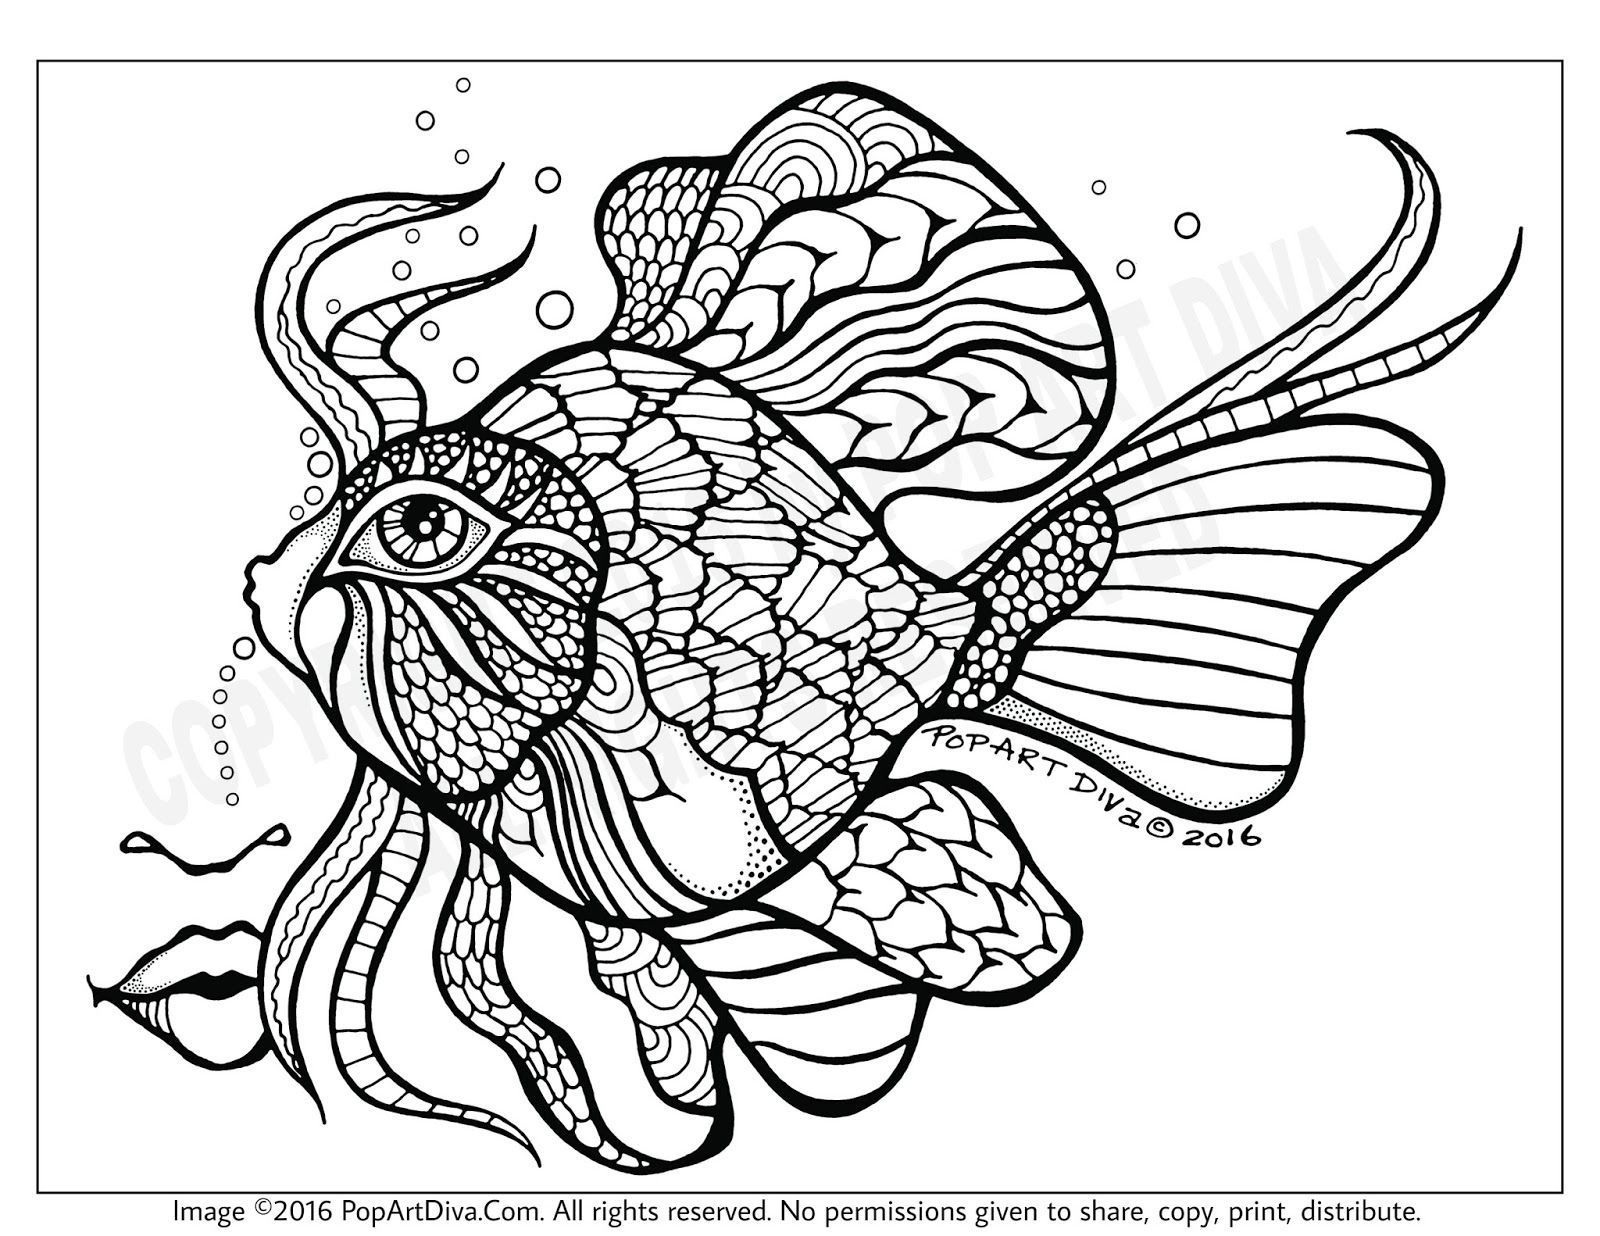 Coloring Books Coloring Pages Coloring Art Posters Books Cards And Coloring Gifts By Pop Art Diva Co Pop Art Colors Pop Art Coloring Pages Coloring Pages